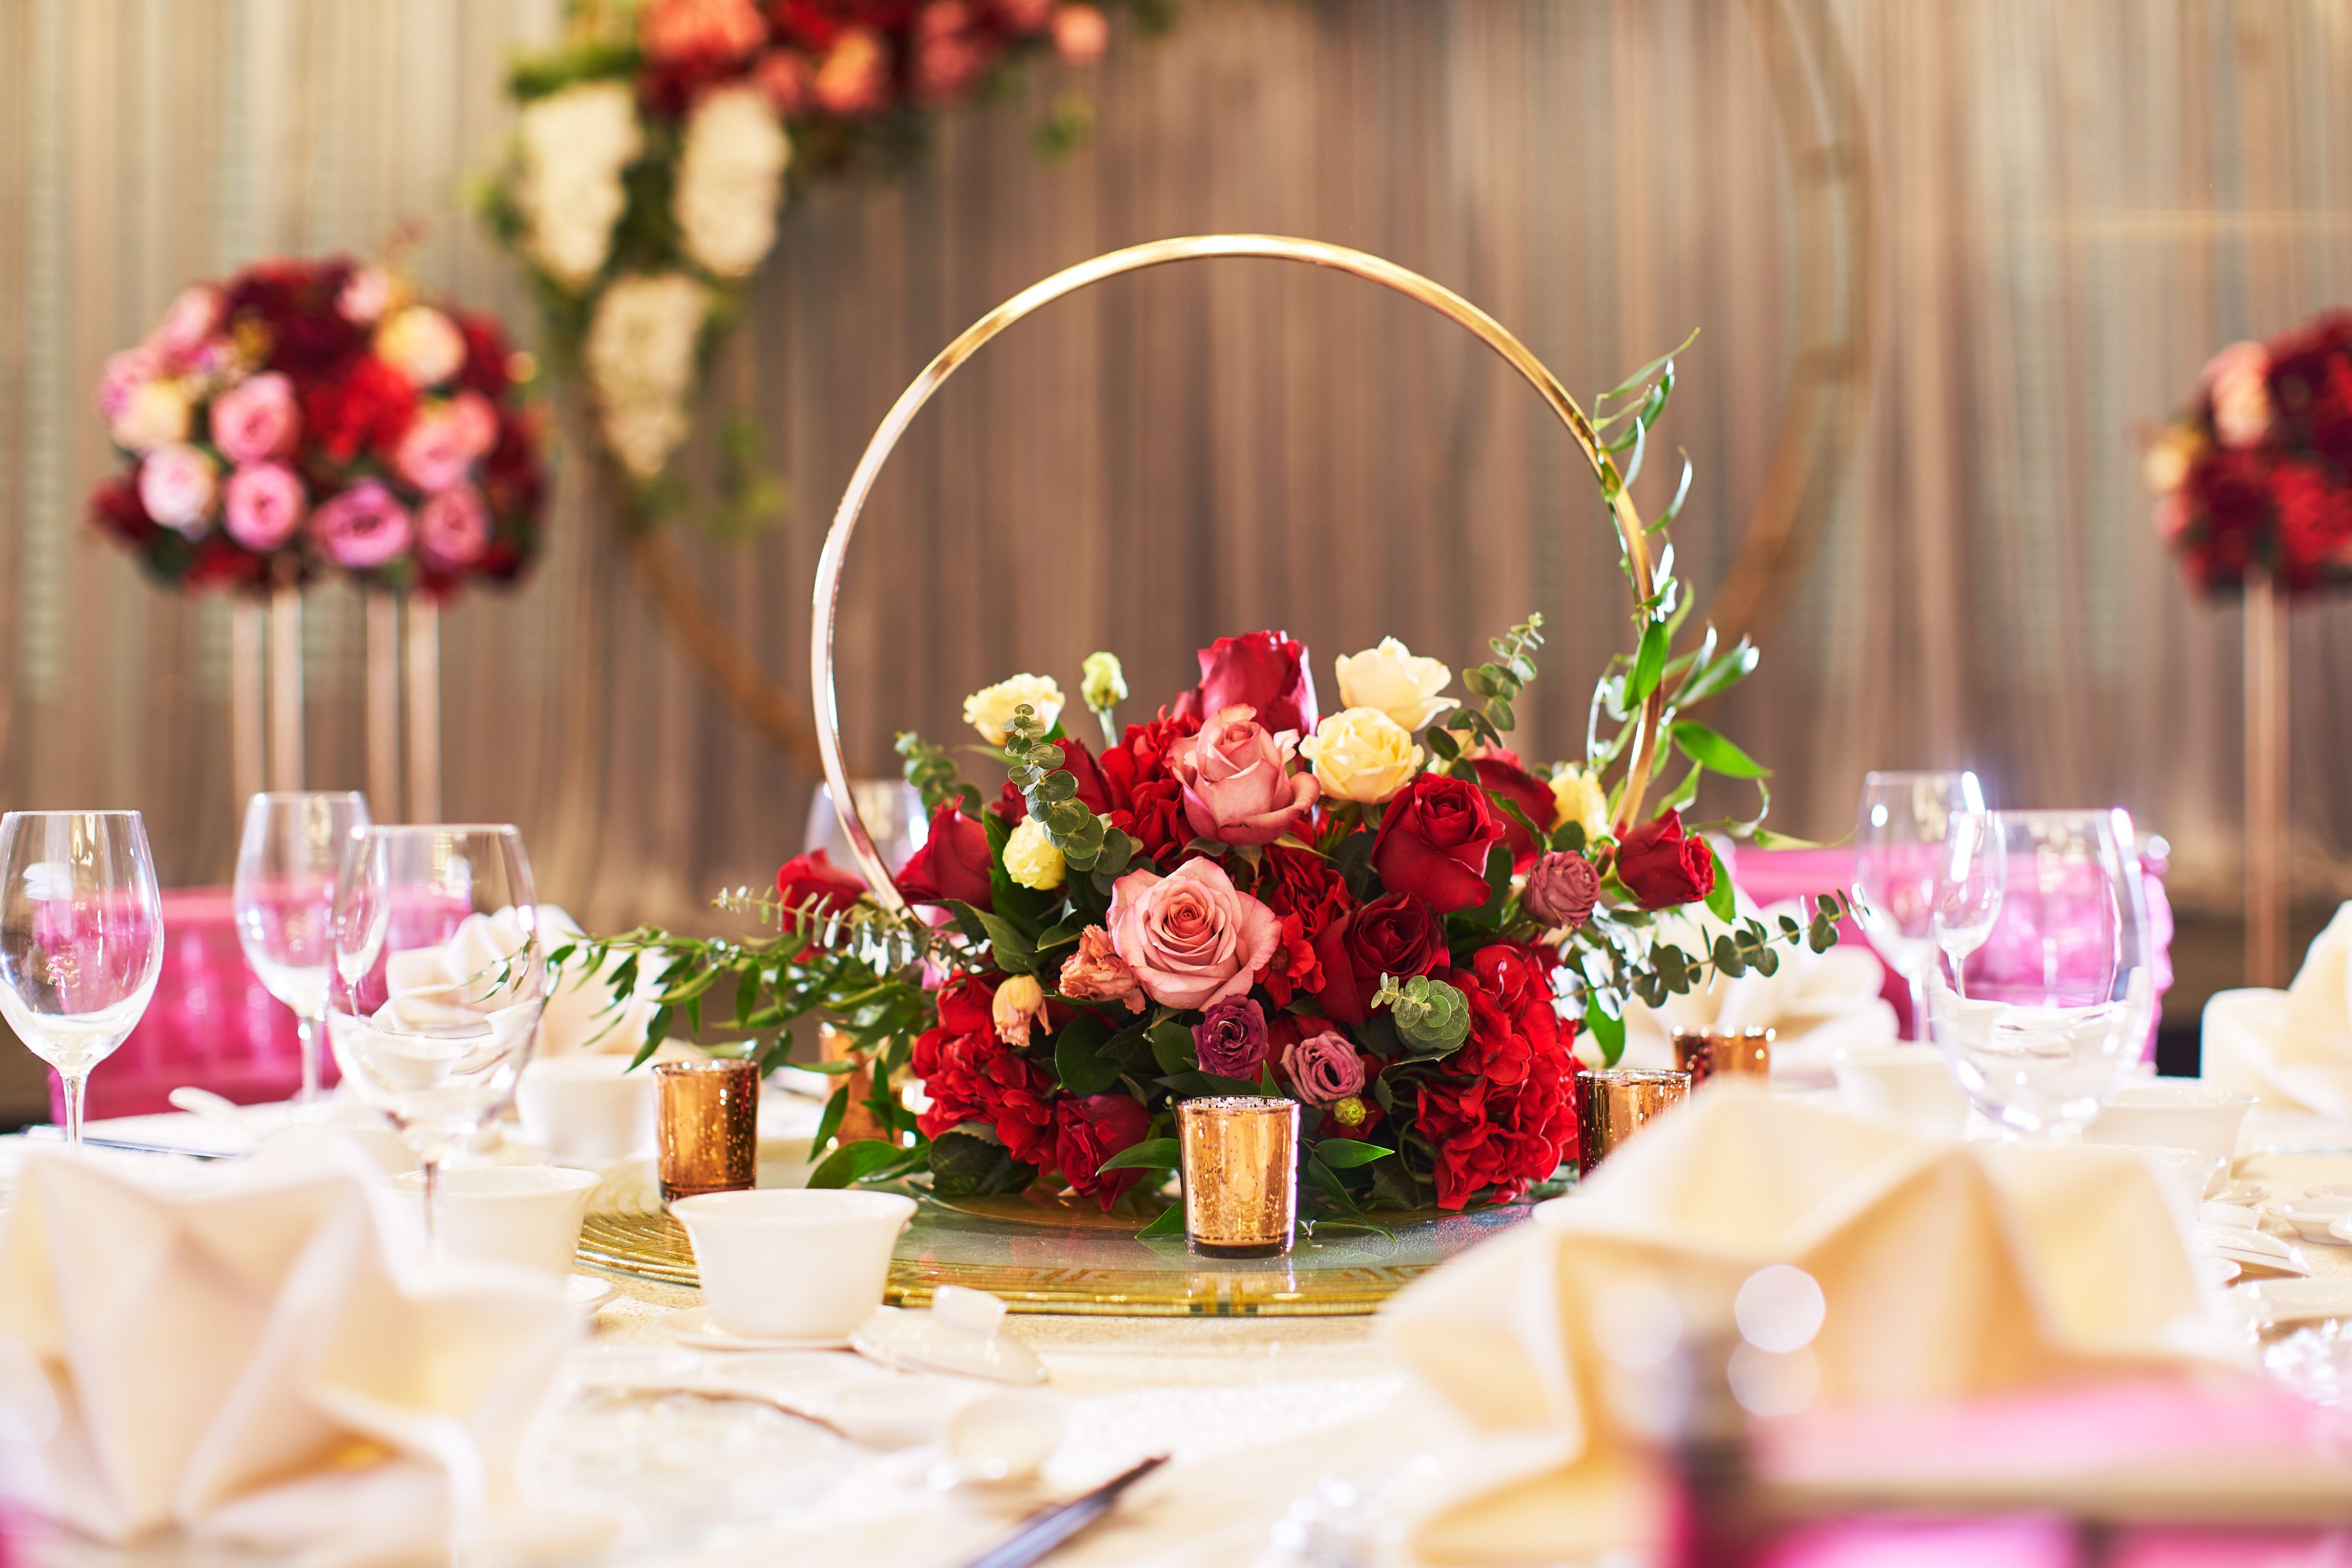 Rendezvous hotel  singapore wedding   ruby romance   vip table %281%29